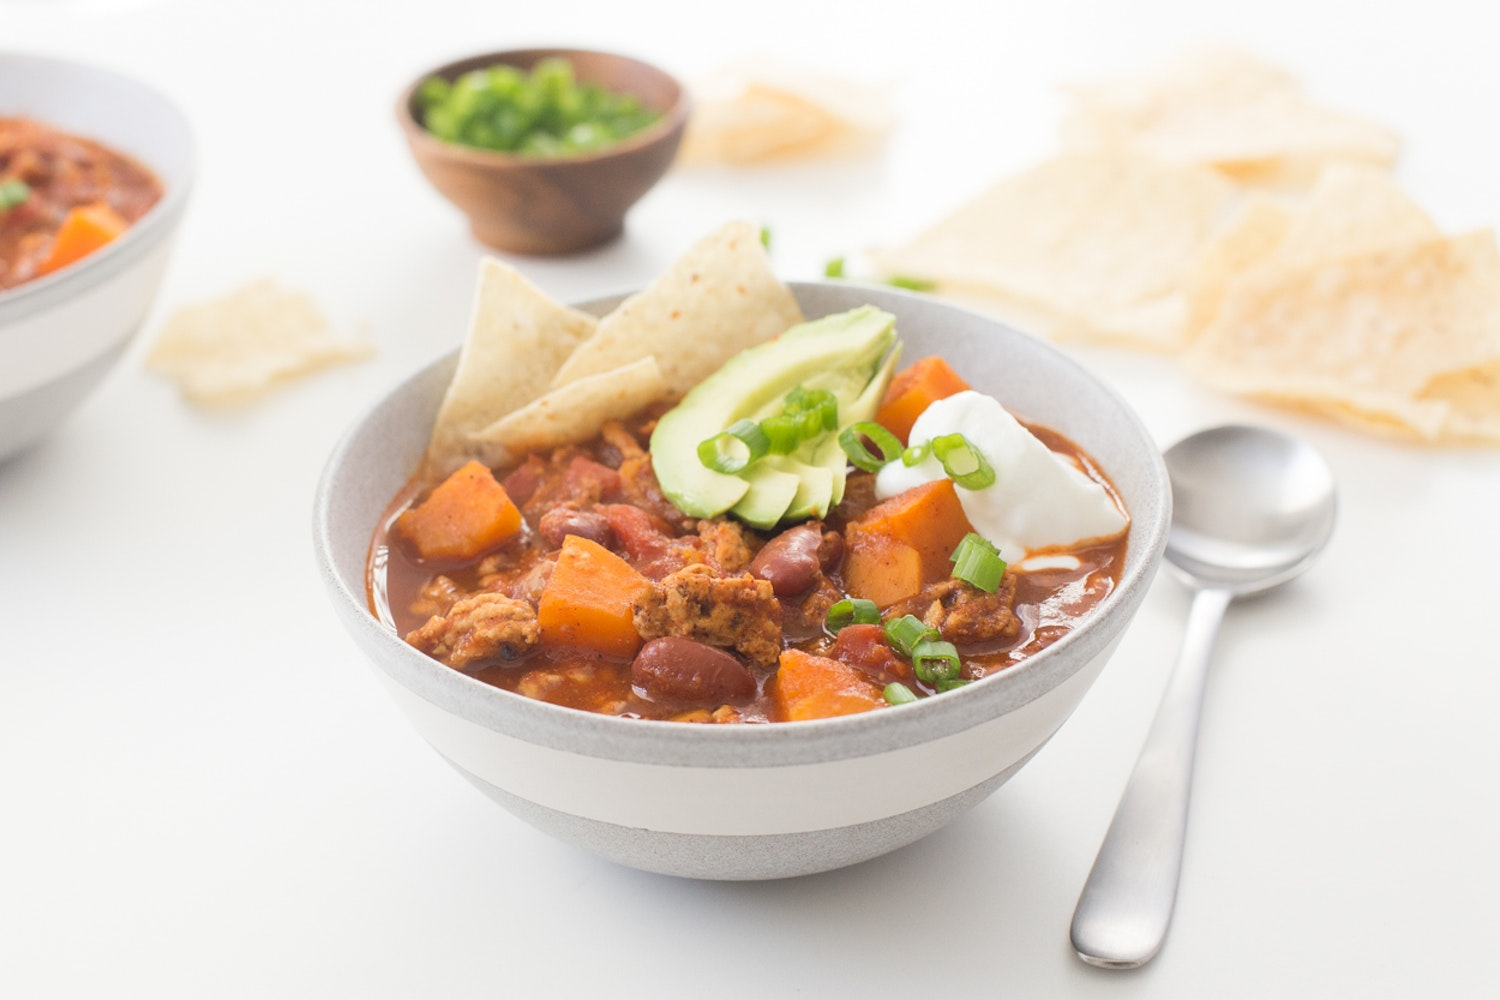 20190128 slow cooker turkey sweet potato chili nm 4.jpg?ixlib=rails 2.1